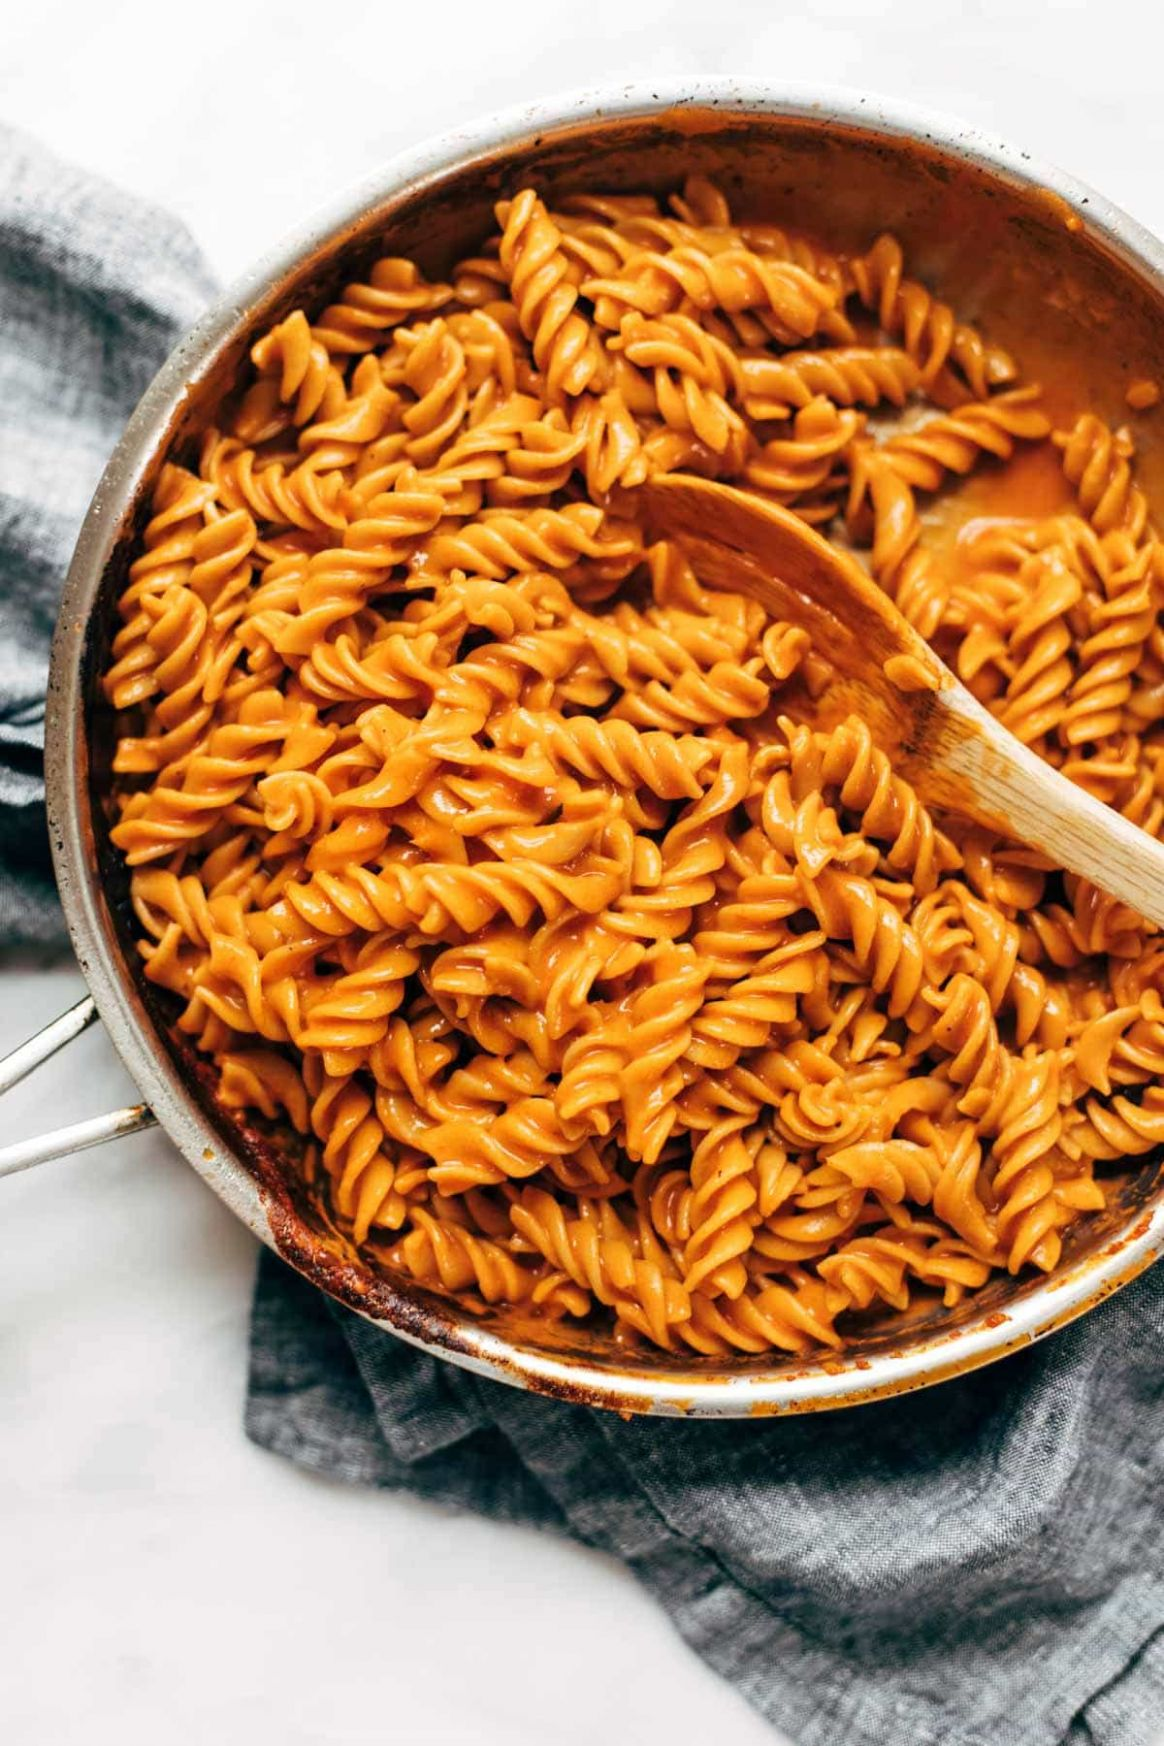 12 Ingredient Vegan Vodka Pasta Recipe - Pinch of Yum